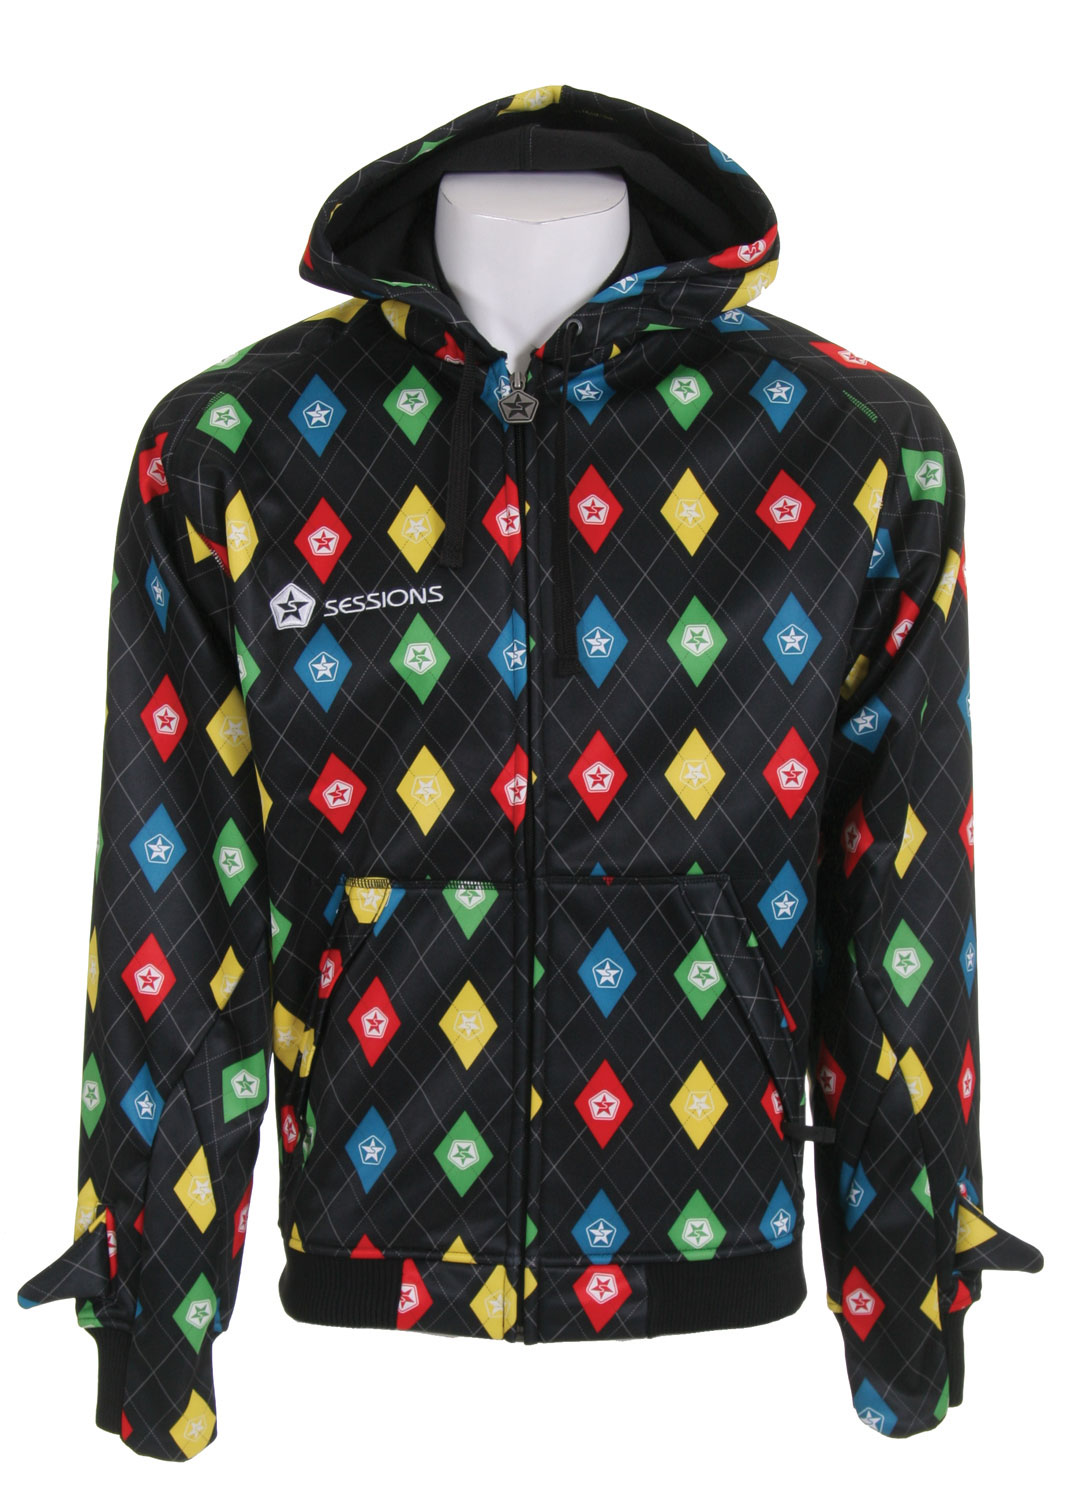 Check out the Sessions Stargyle Softshell Hoodie Black to channel your inner self. This bright and vibrant sweatshirt is sure to turn heads whether you are on the slopes or walking through the shopping mall. A concealed audio port is also included so you can listen to your tunes anywhere at any time. Also included are hidden features such as a hand warming mitt and a hideaway thumb. Put all these together and you get quite the package.Key Features of The Sessions Stargyle Softshell Hoodie: 5,000mm Waterproof 5,000g Breathability Interlock Fleece Audio Port Hidden Mitt, Hideaway Thumb and Mitt Features - $41.56